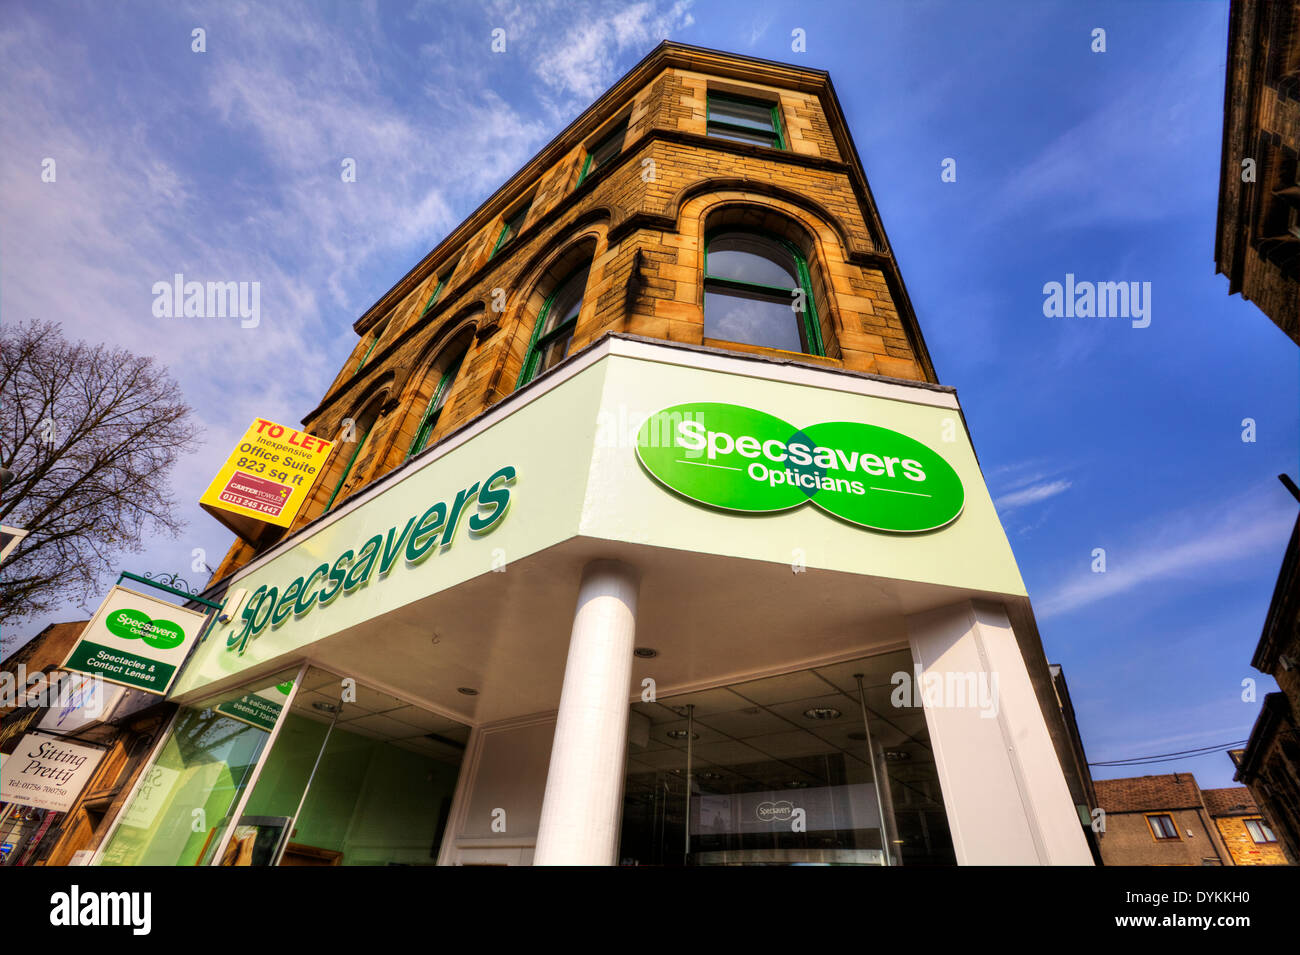 Specsavers shop sign optician high street shops Skipton Town Yorkshire Dales National Park, UK England - Stock Image